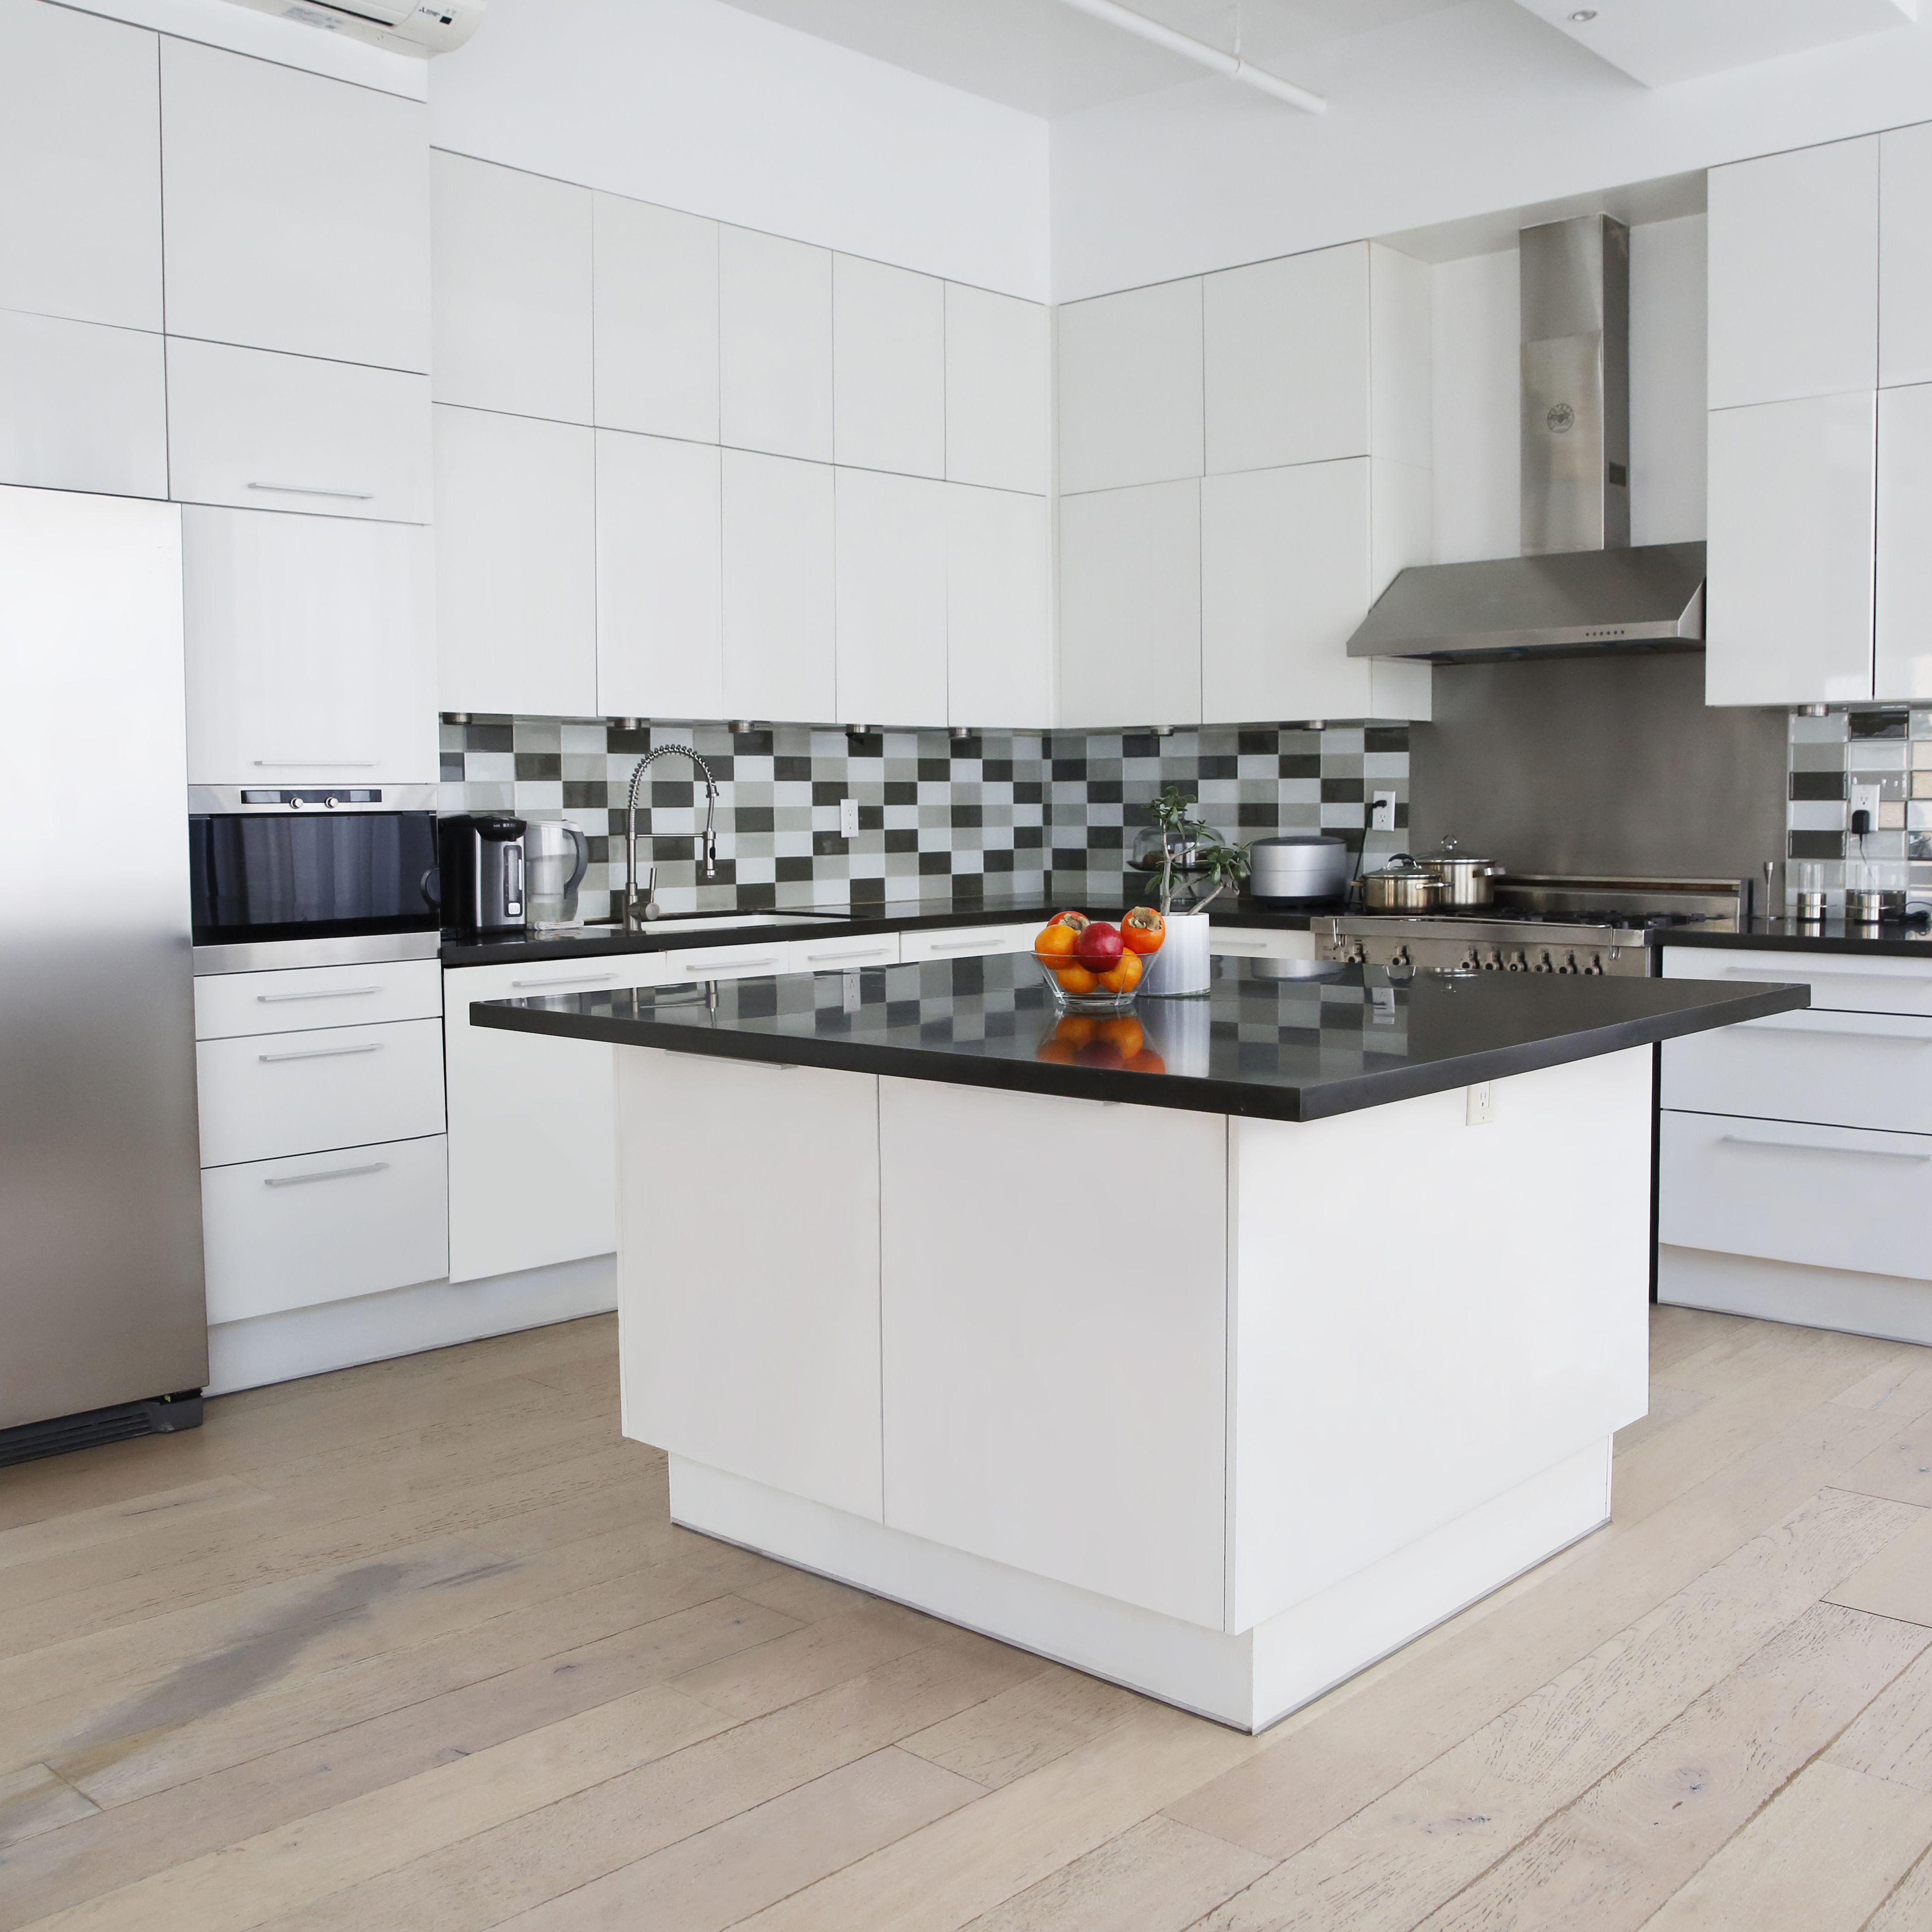 Options For Countertop Edge Treatments